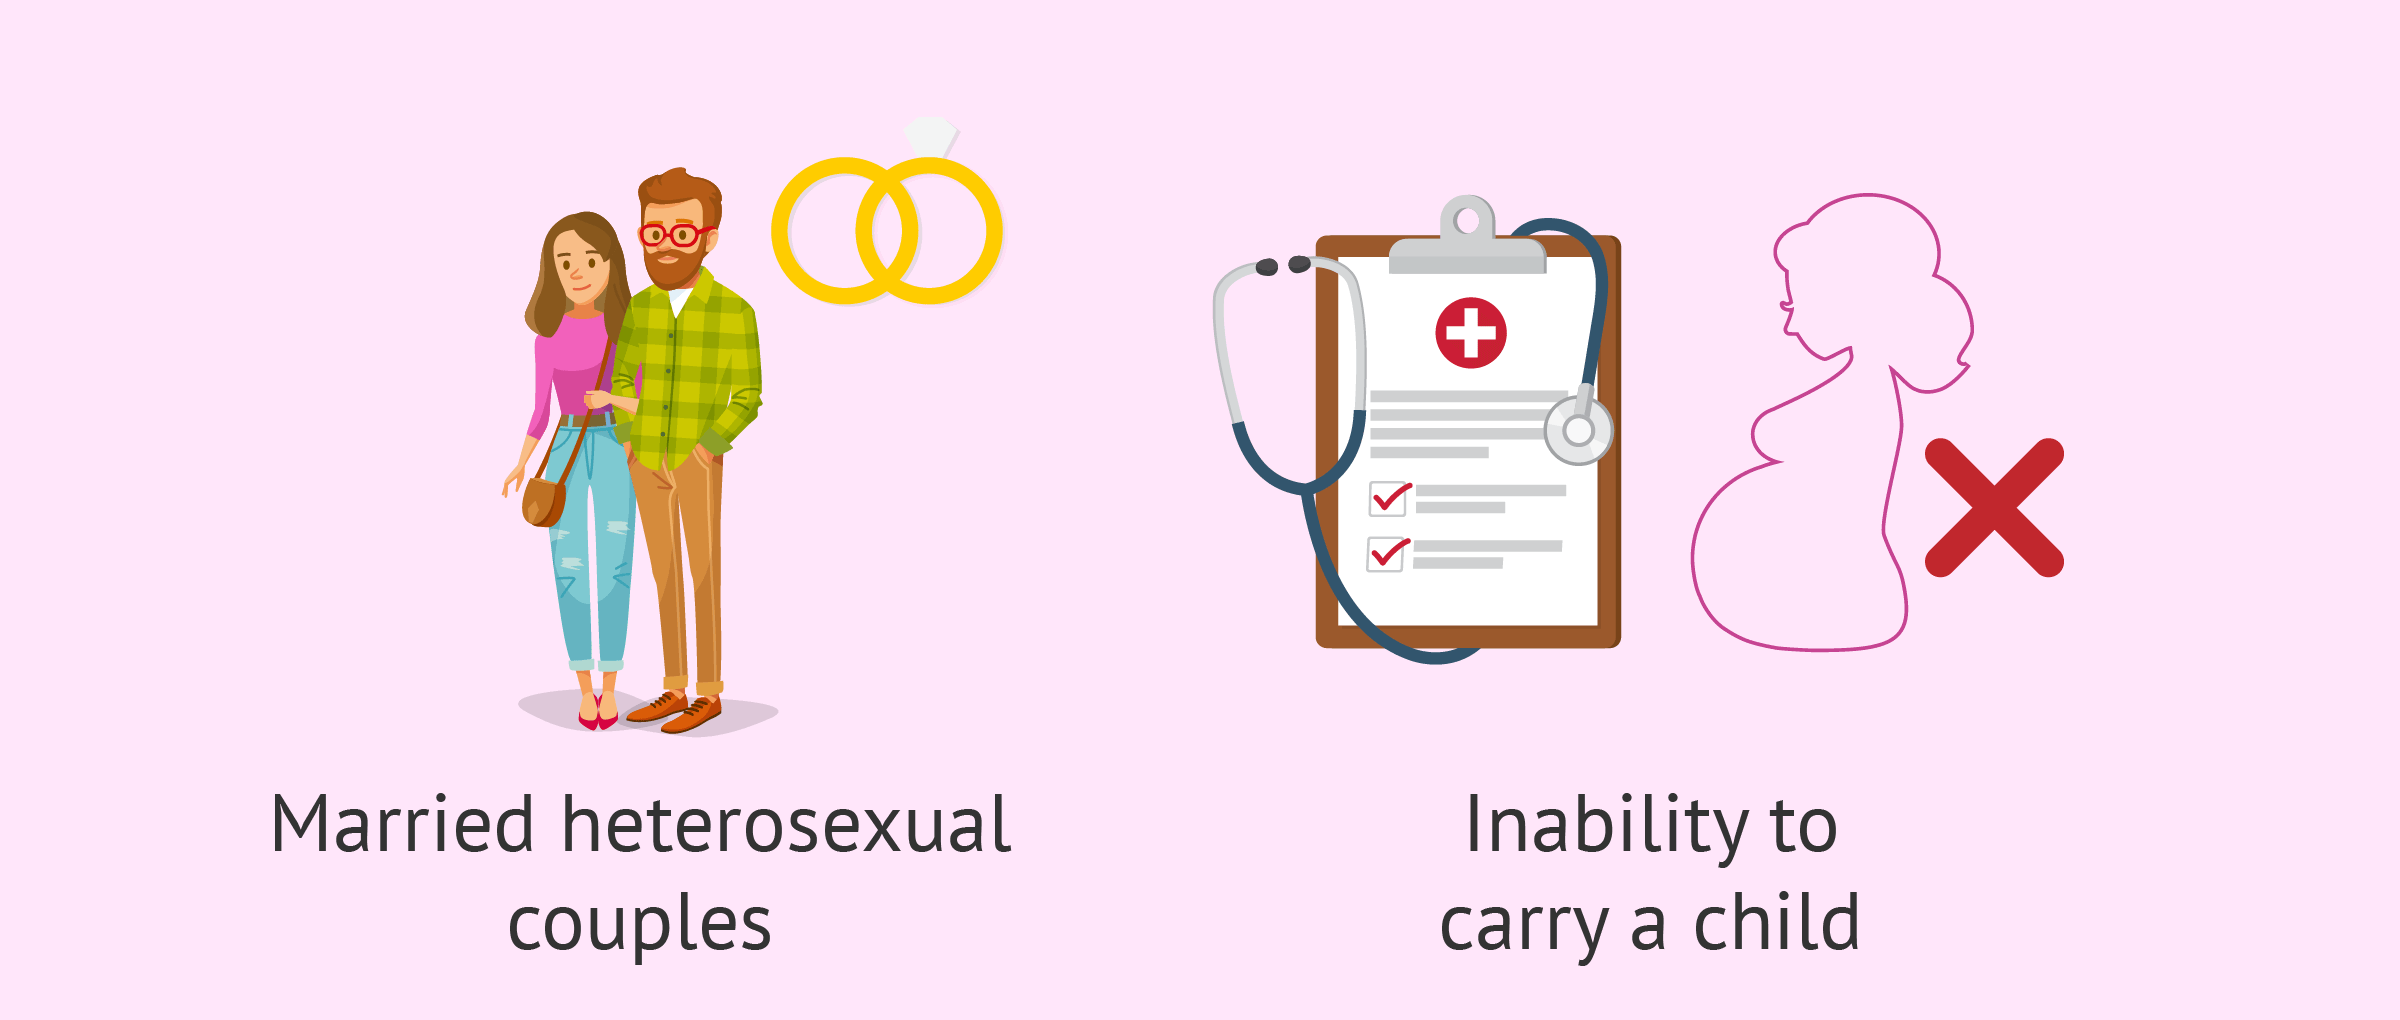 Requirements for surrogacy in the Republic of Georgia